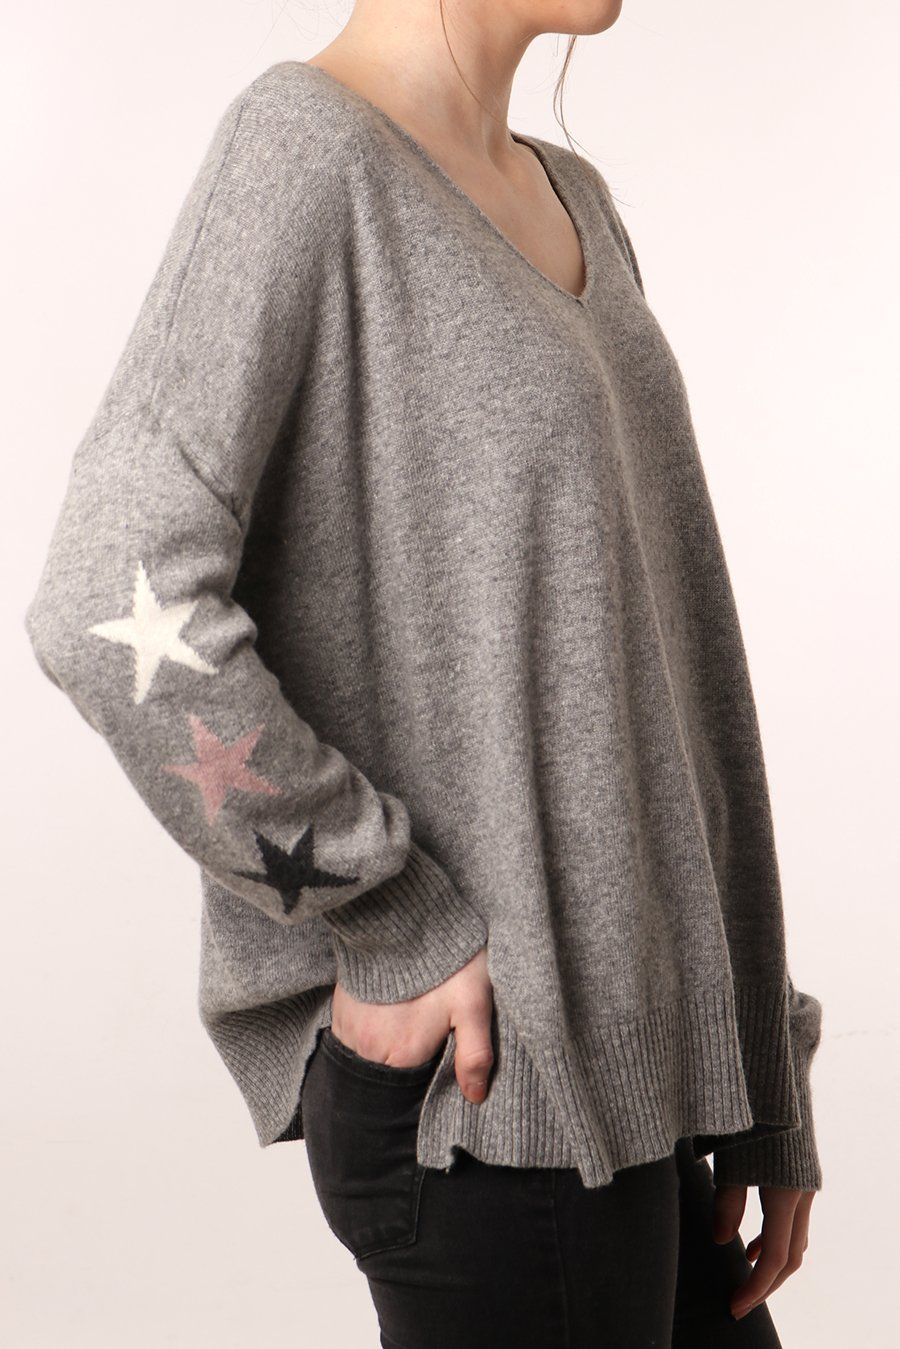 771c1e8ba6c9ed Light Grey Cashmere Blend Jumper with White, Pink & Grey Star Sleeves